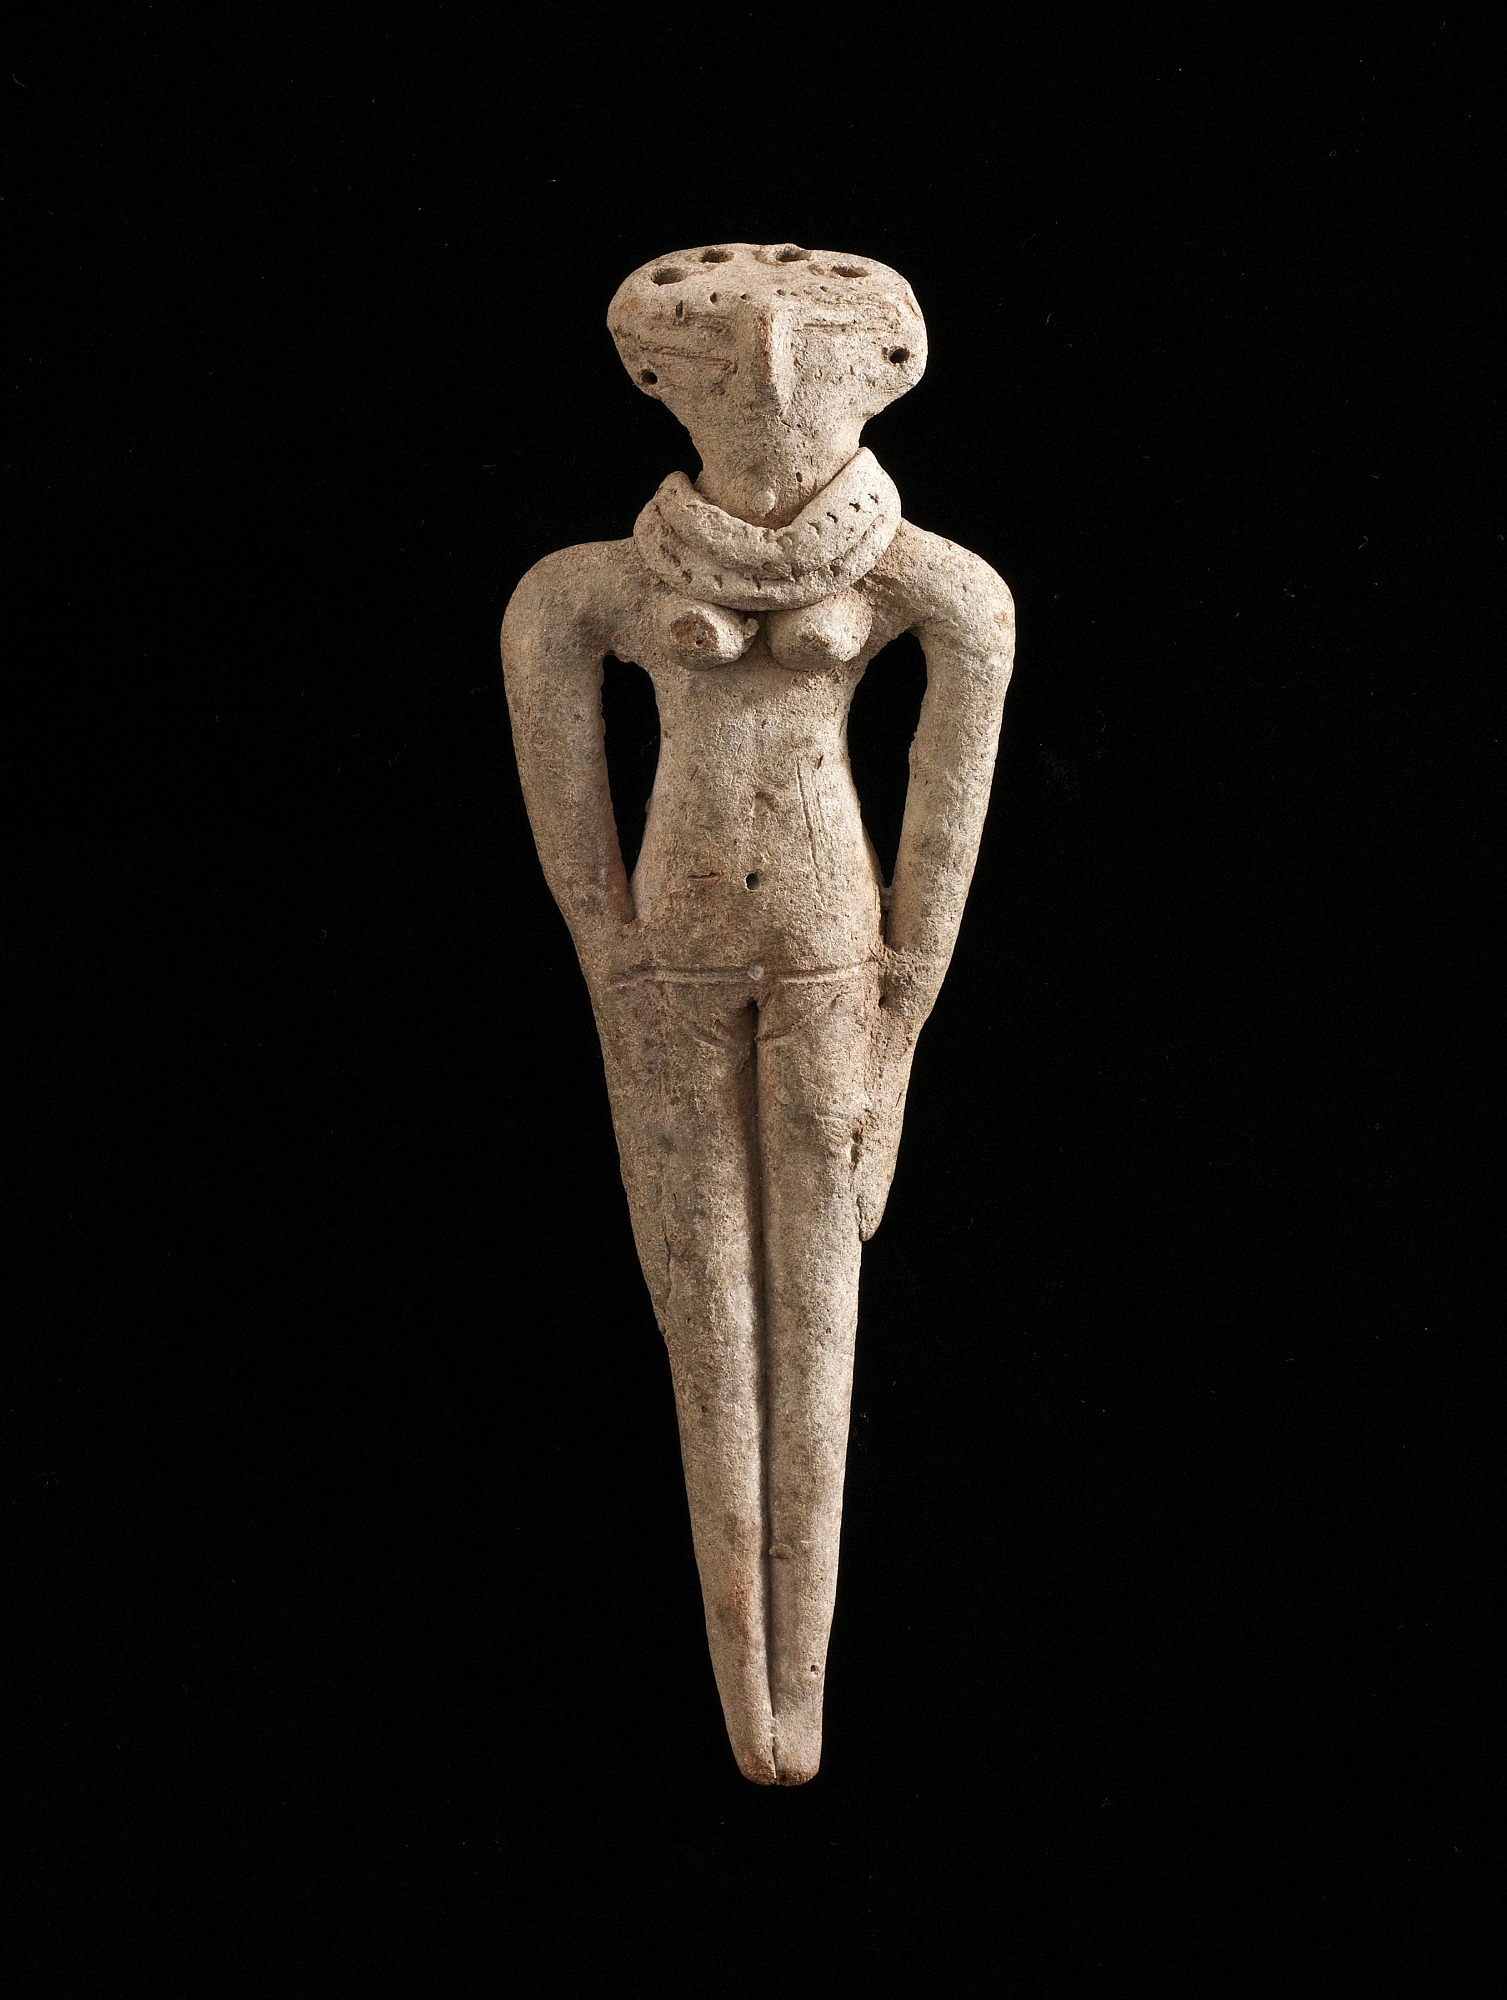 : Female figurine